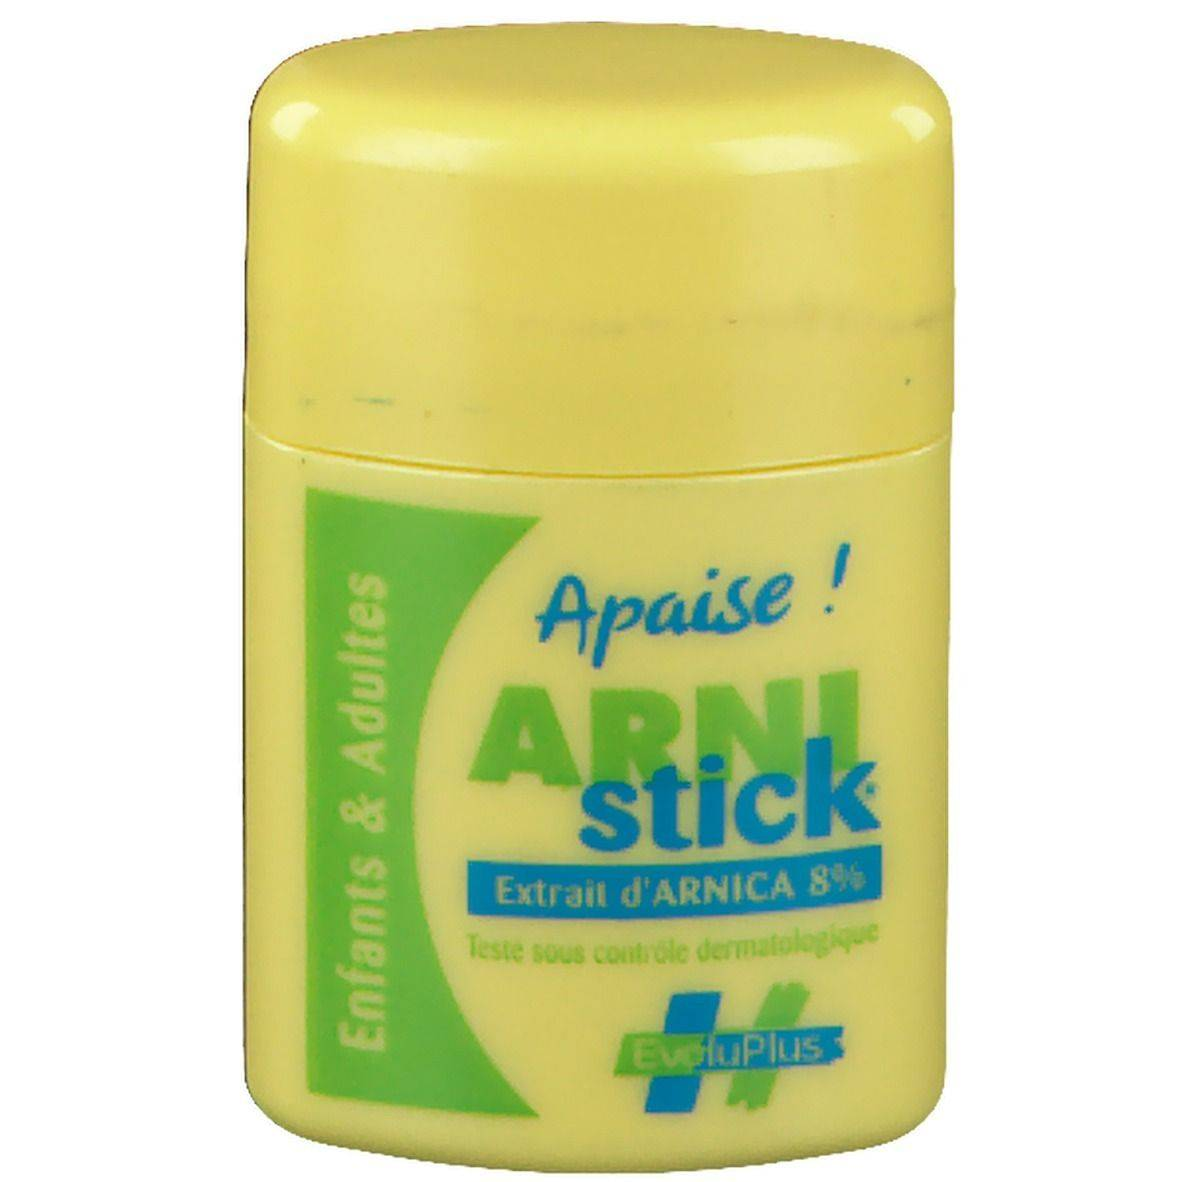 Arnistick Contre-coups ml crayon(s)